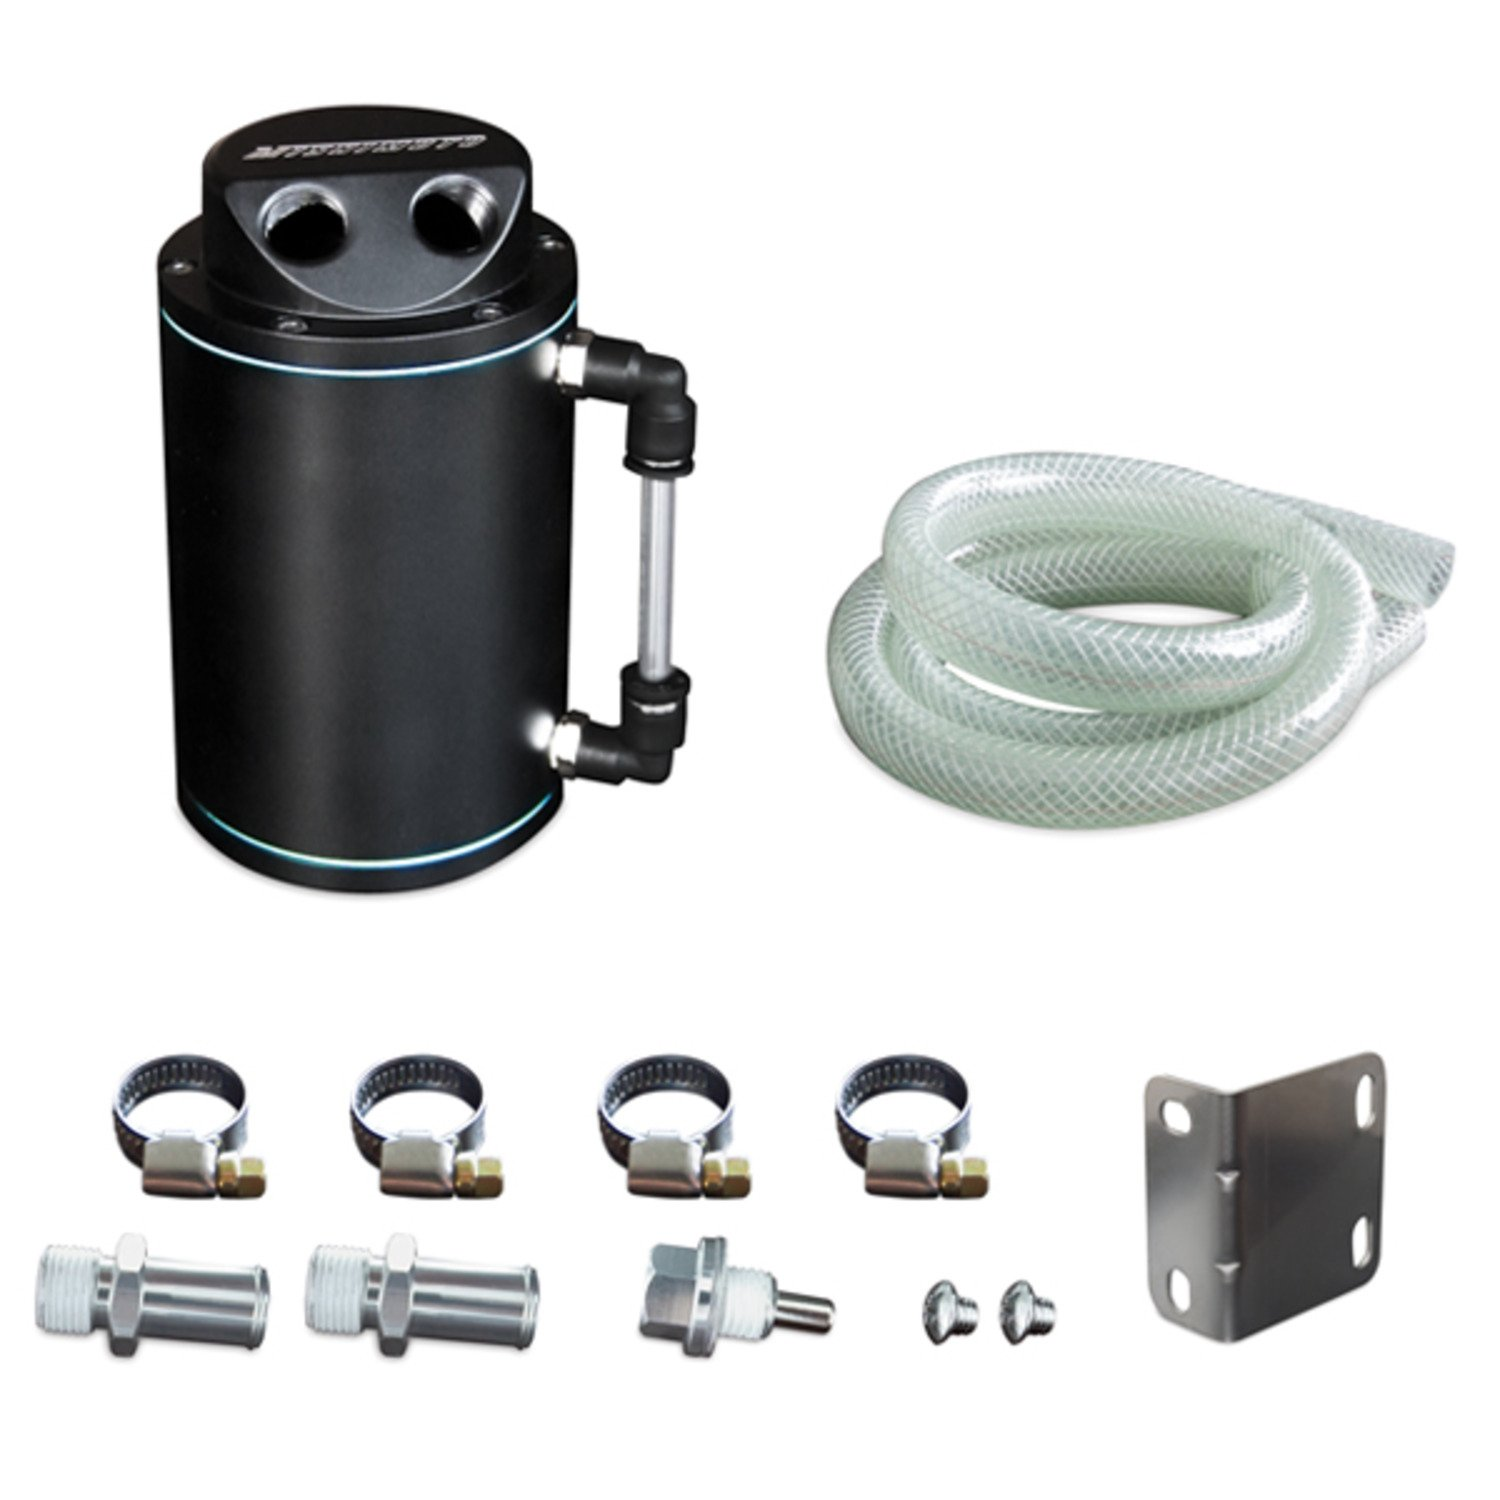 Mishimoto MMOCC-RB Black Oil Catch Can